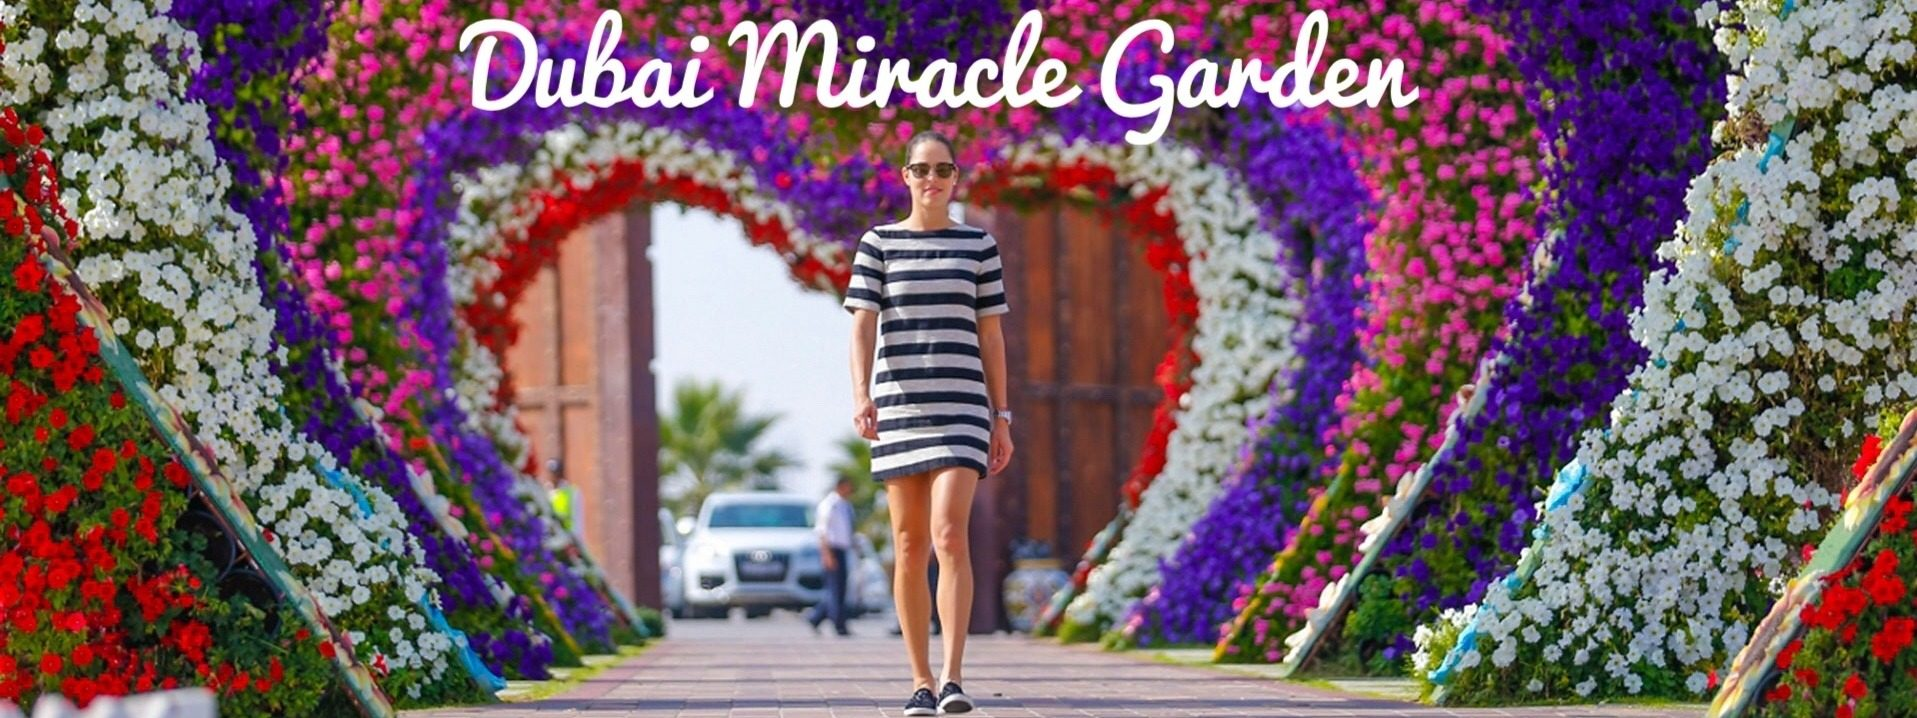 Dubai Miracle Garden 2018 – 2019 - Coming Soon in UAE